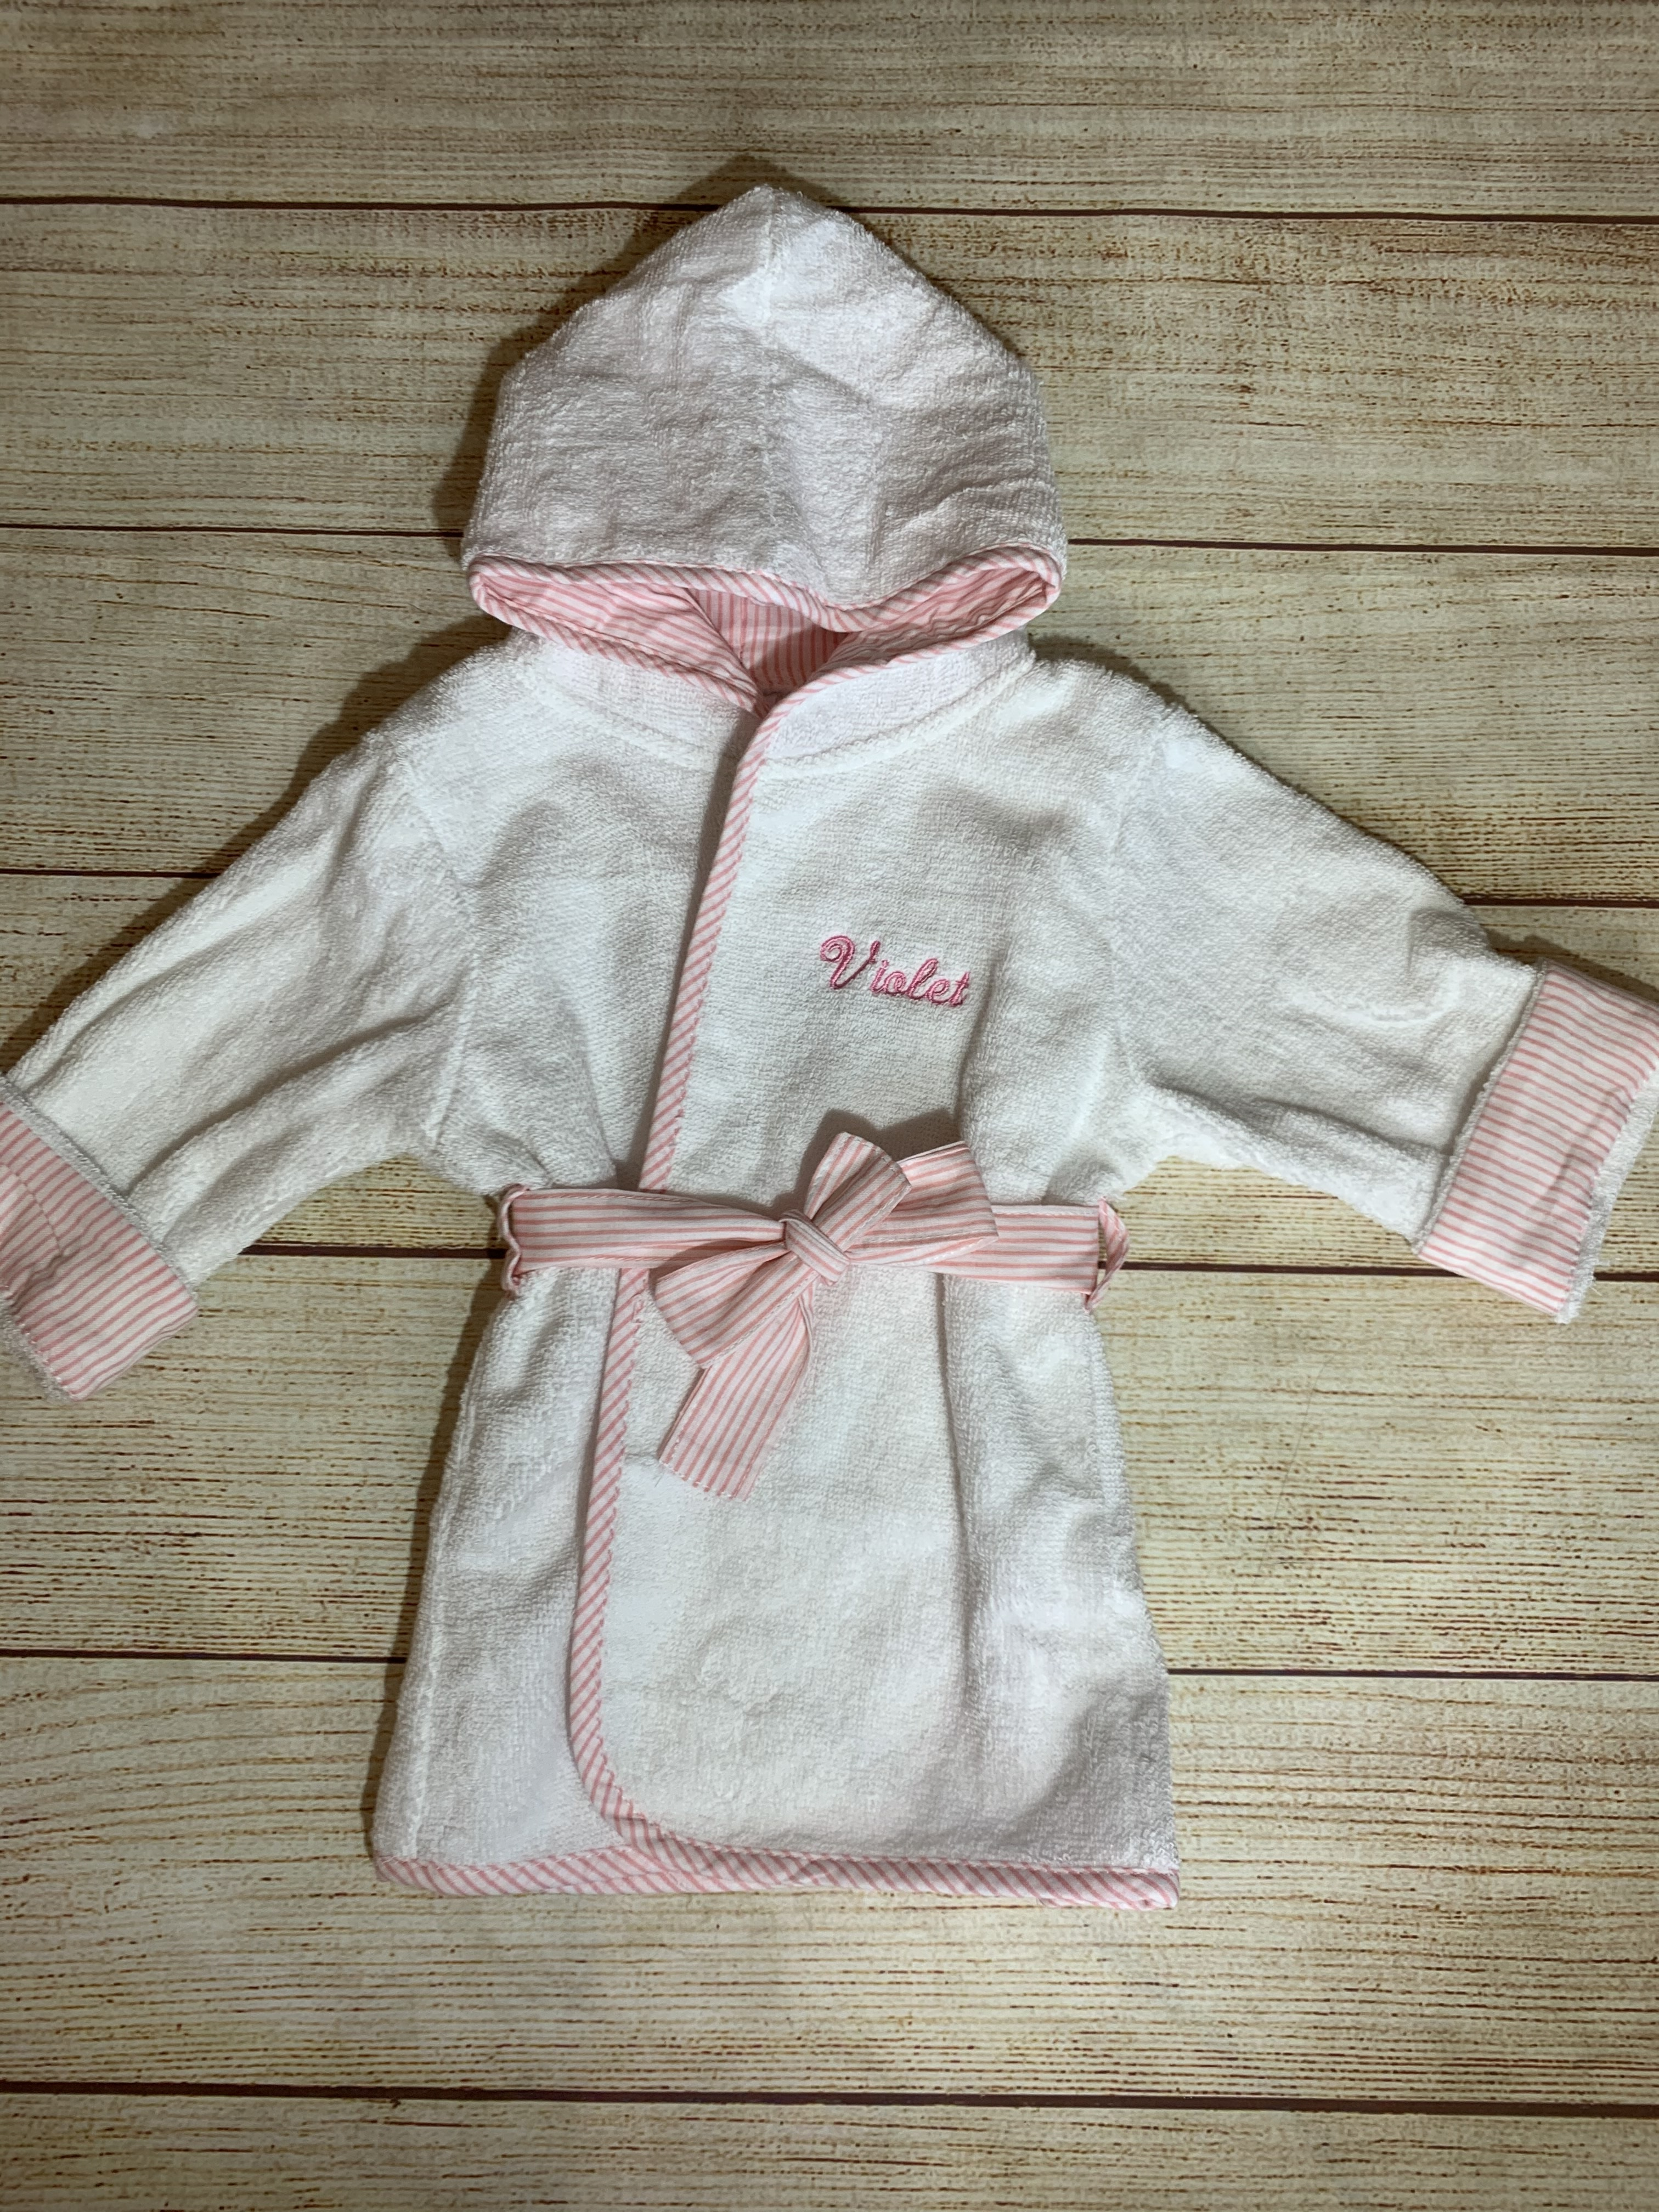 Wrap her up in a Pink Trim Baby Robe by Wicked Stitches Gifts